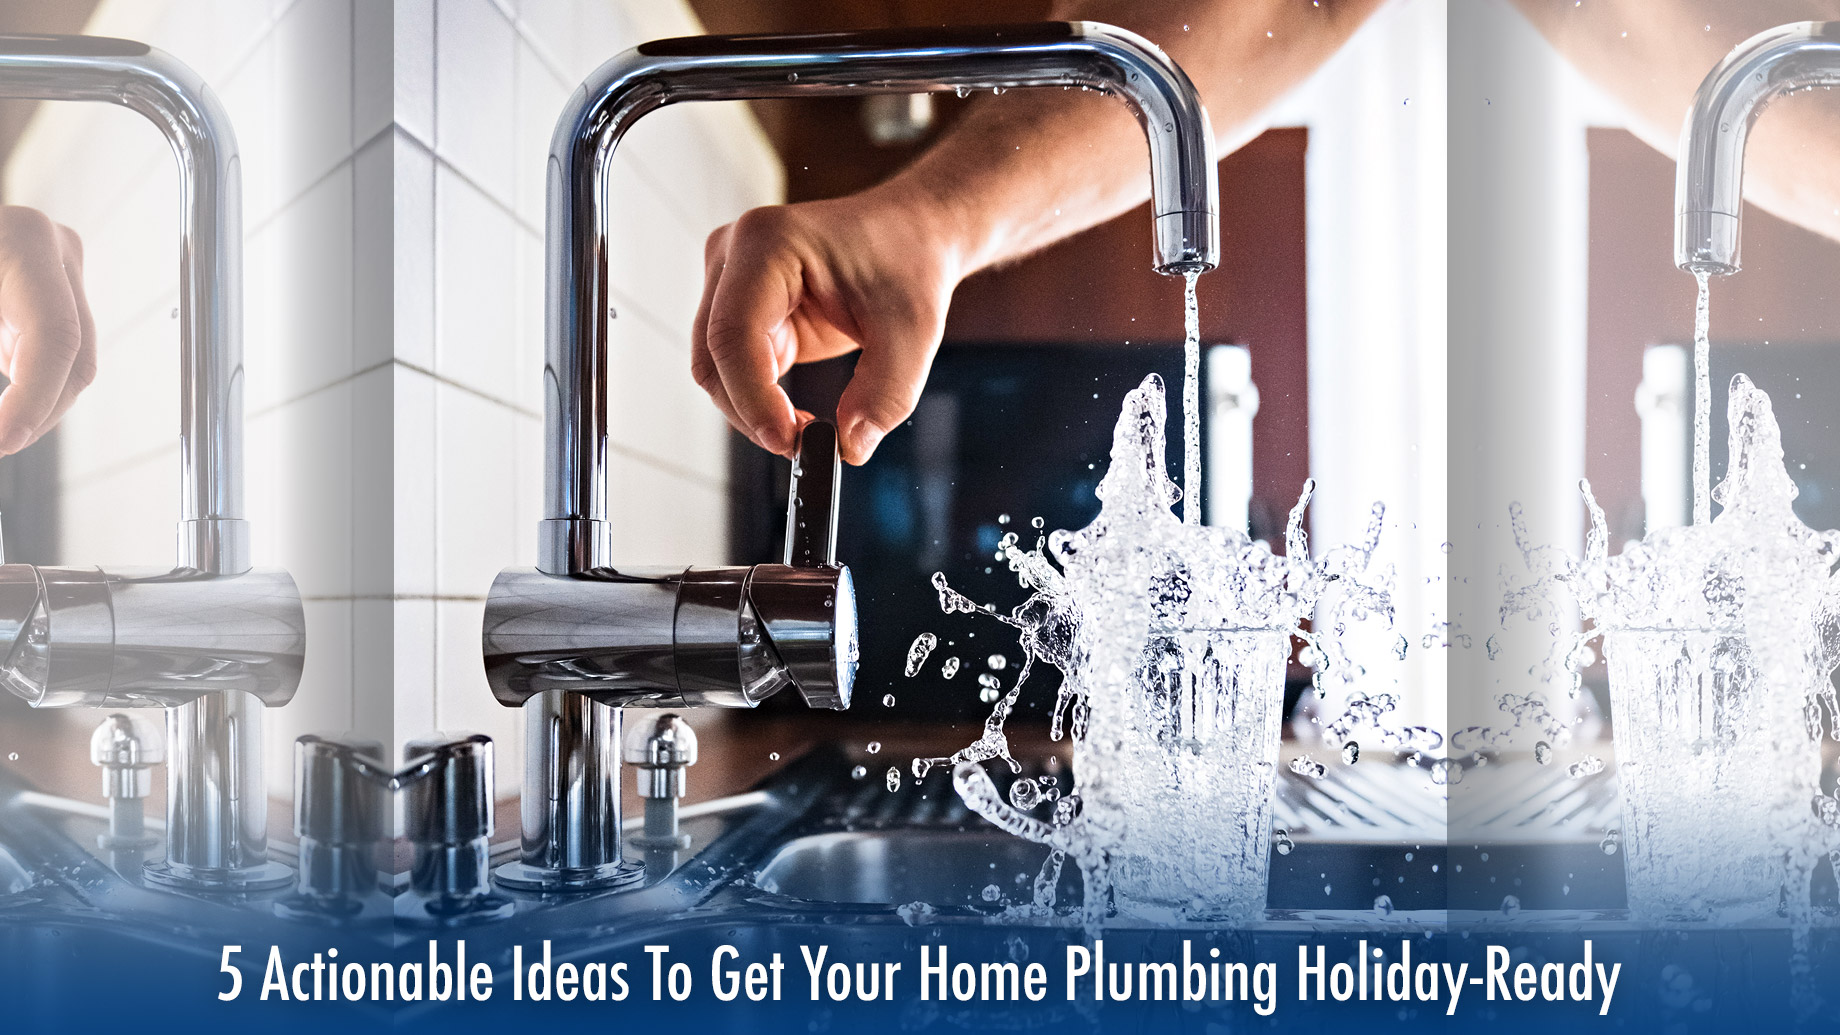 5 Actionable Ideas To Get Your Home Plumbing Holiday-Ready